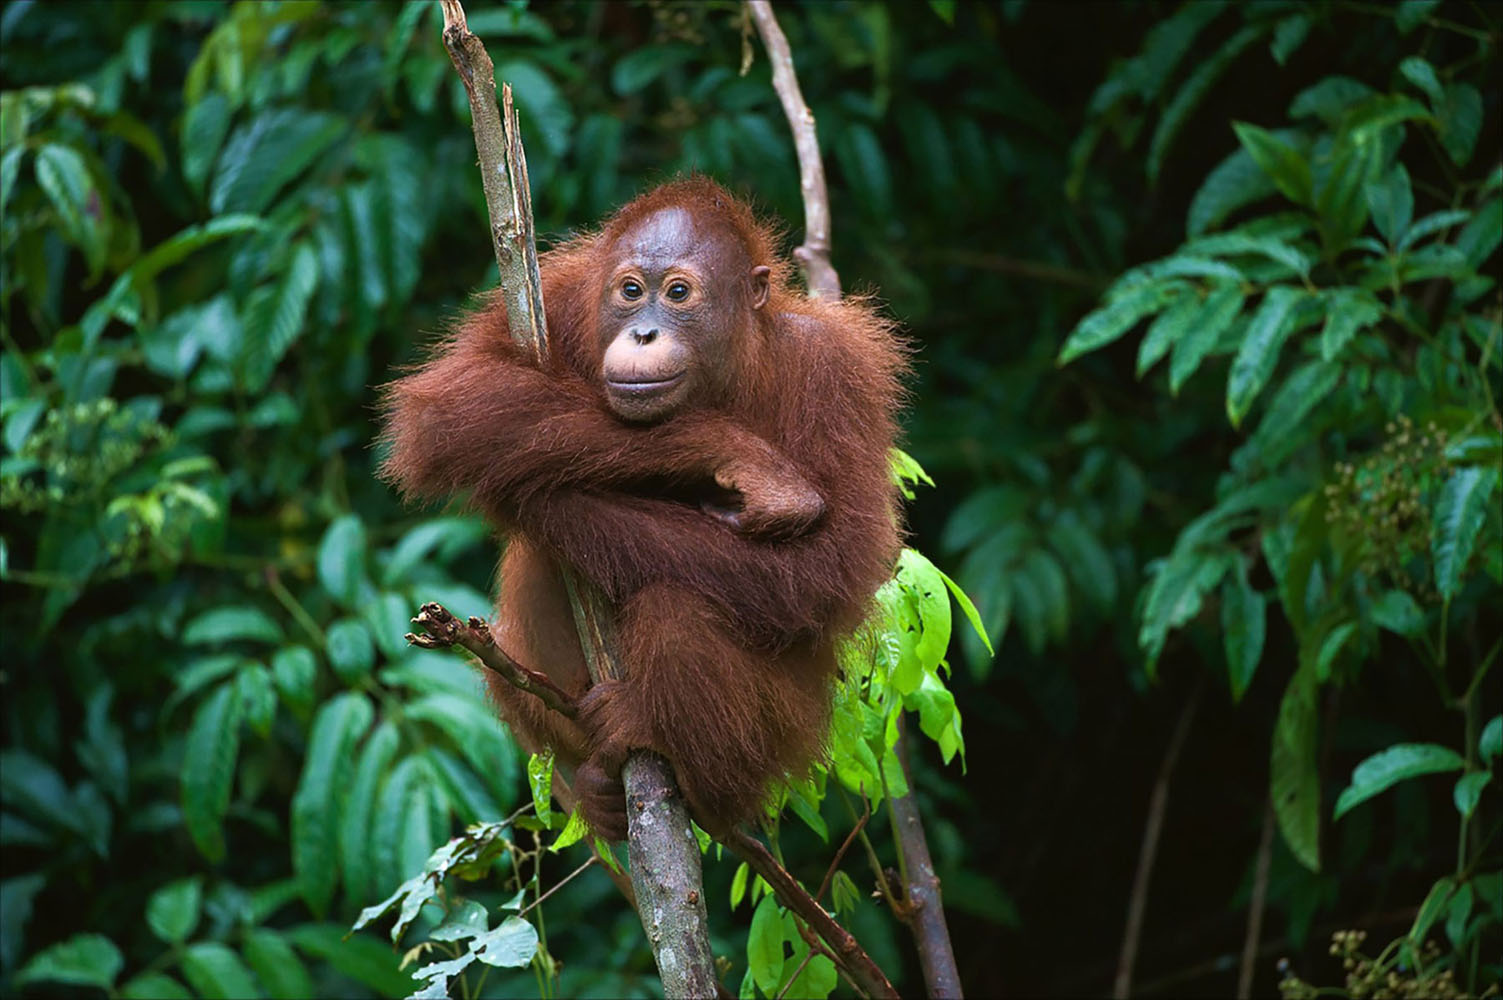 Young Orangutan sitting on the tree